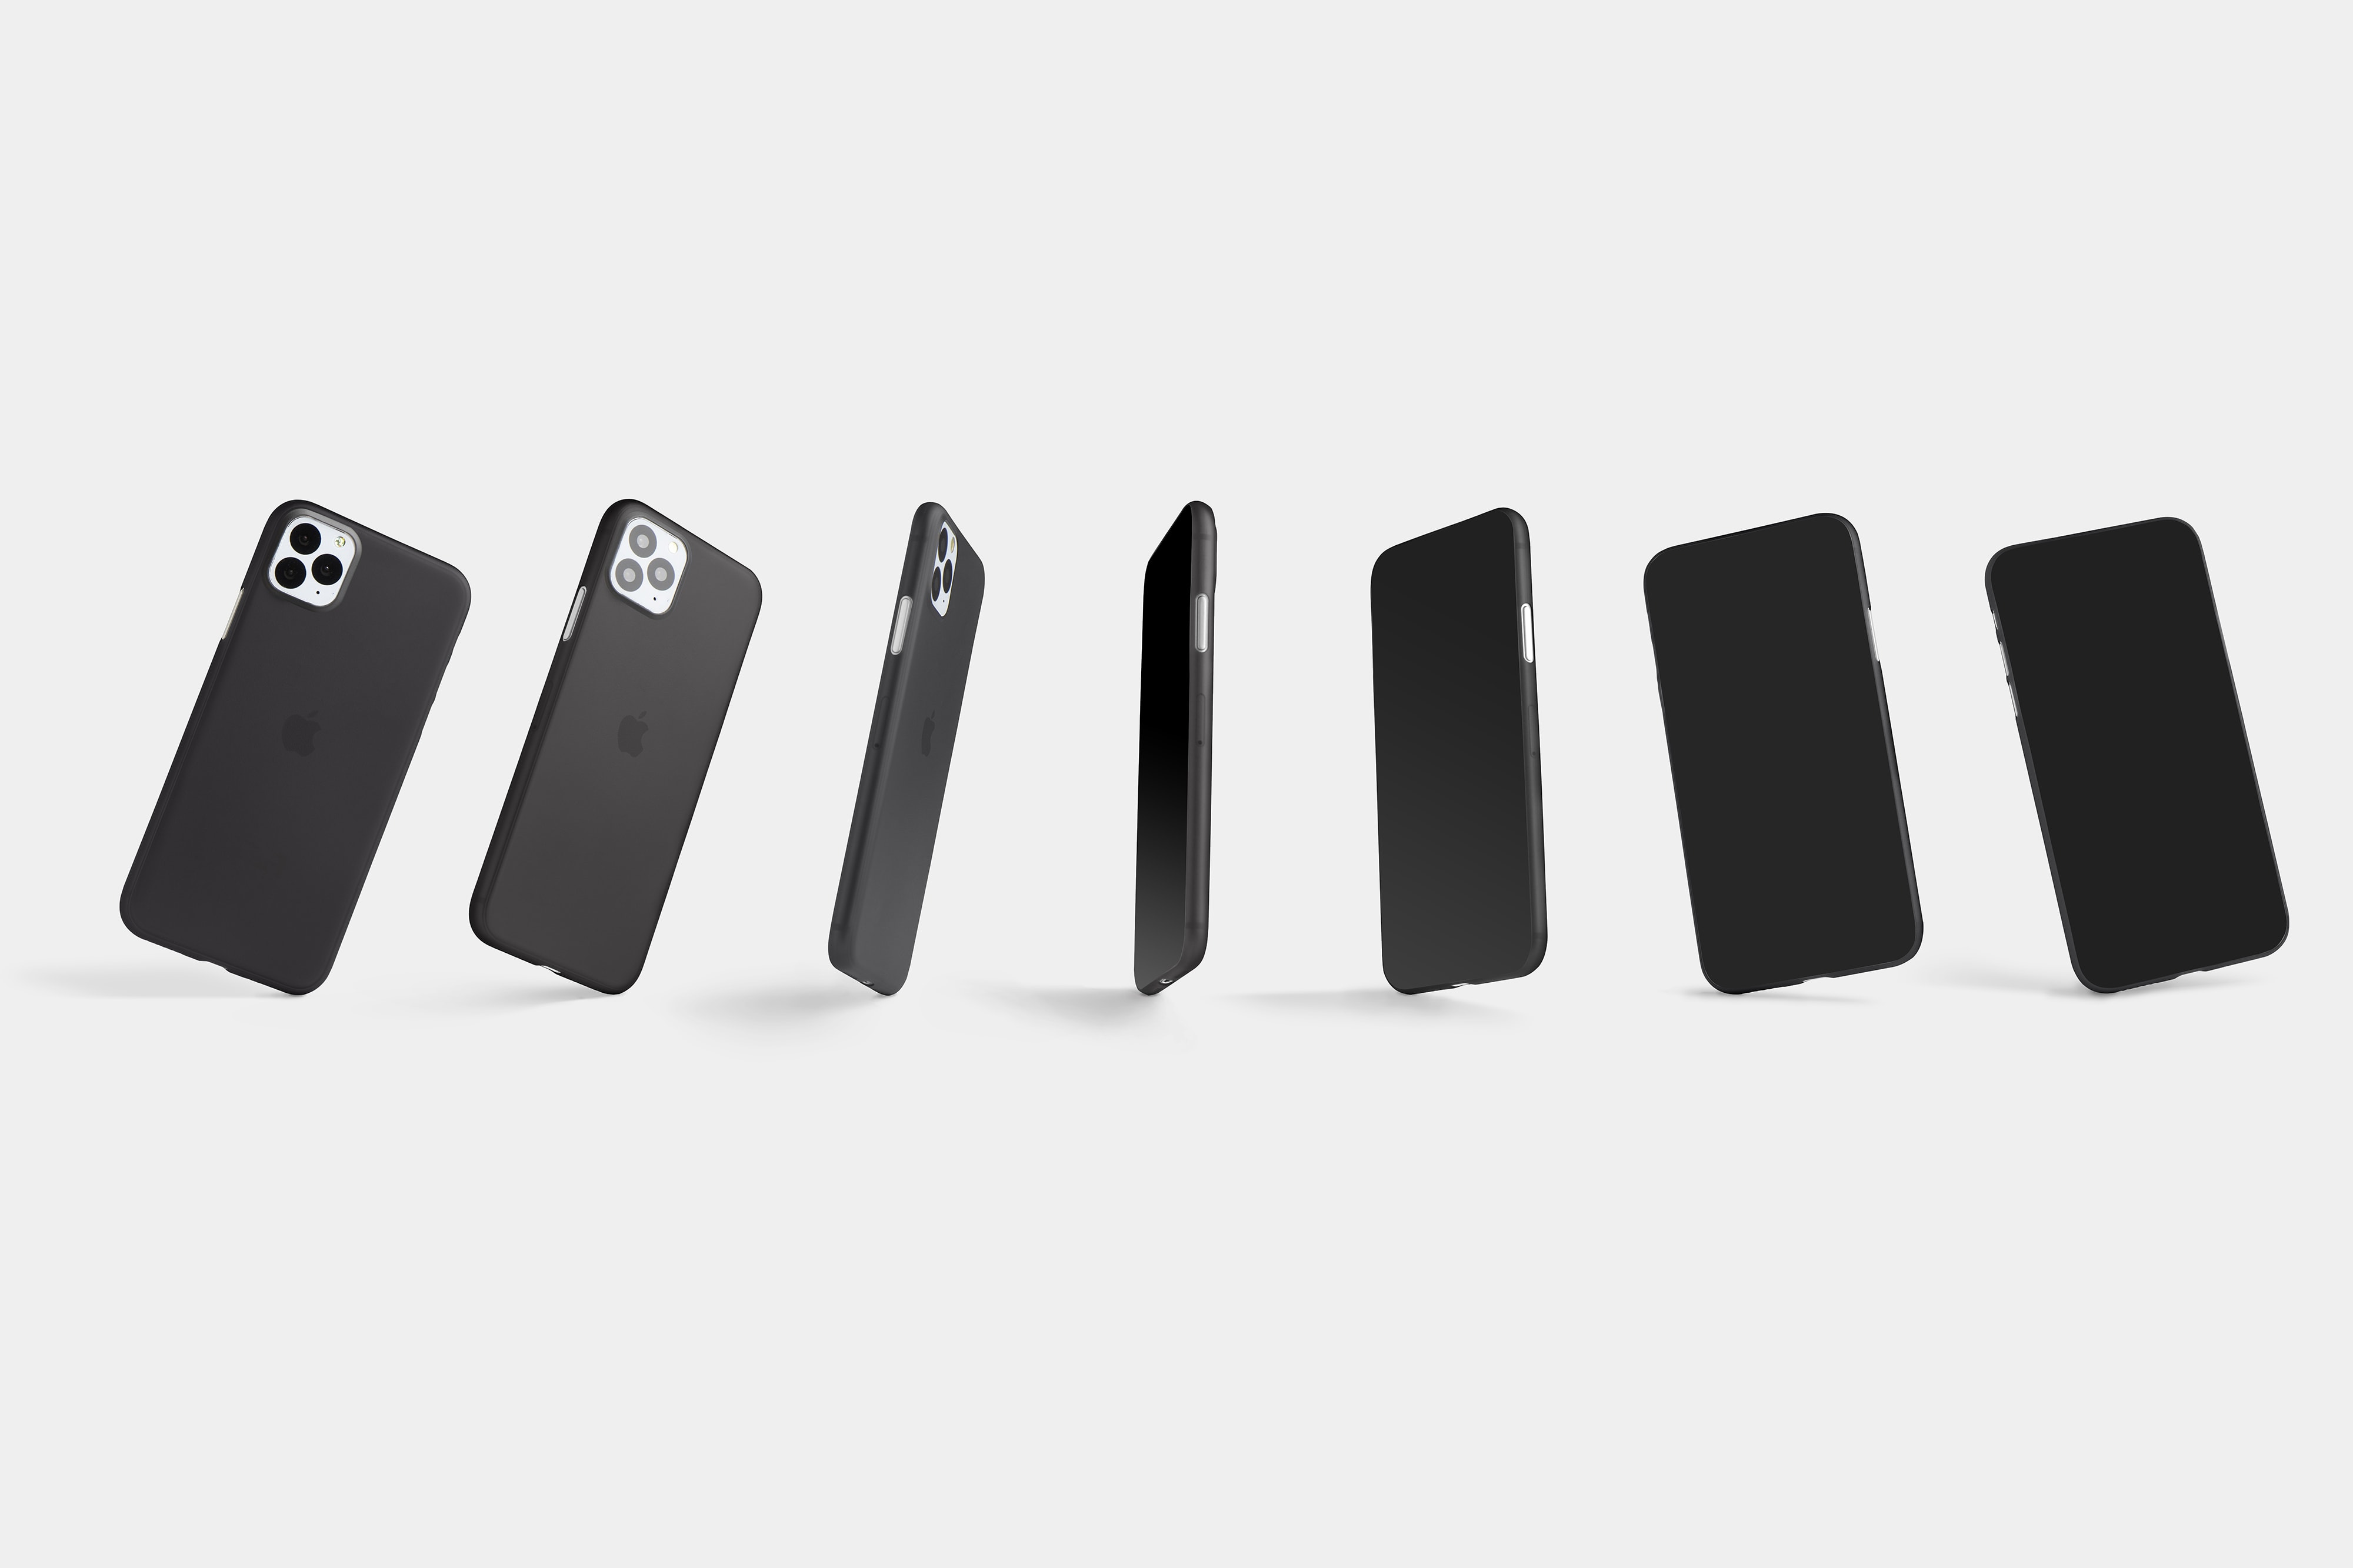 Super-thin Totallee iPhone 11 cases are now available on Amazon.com.